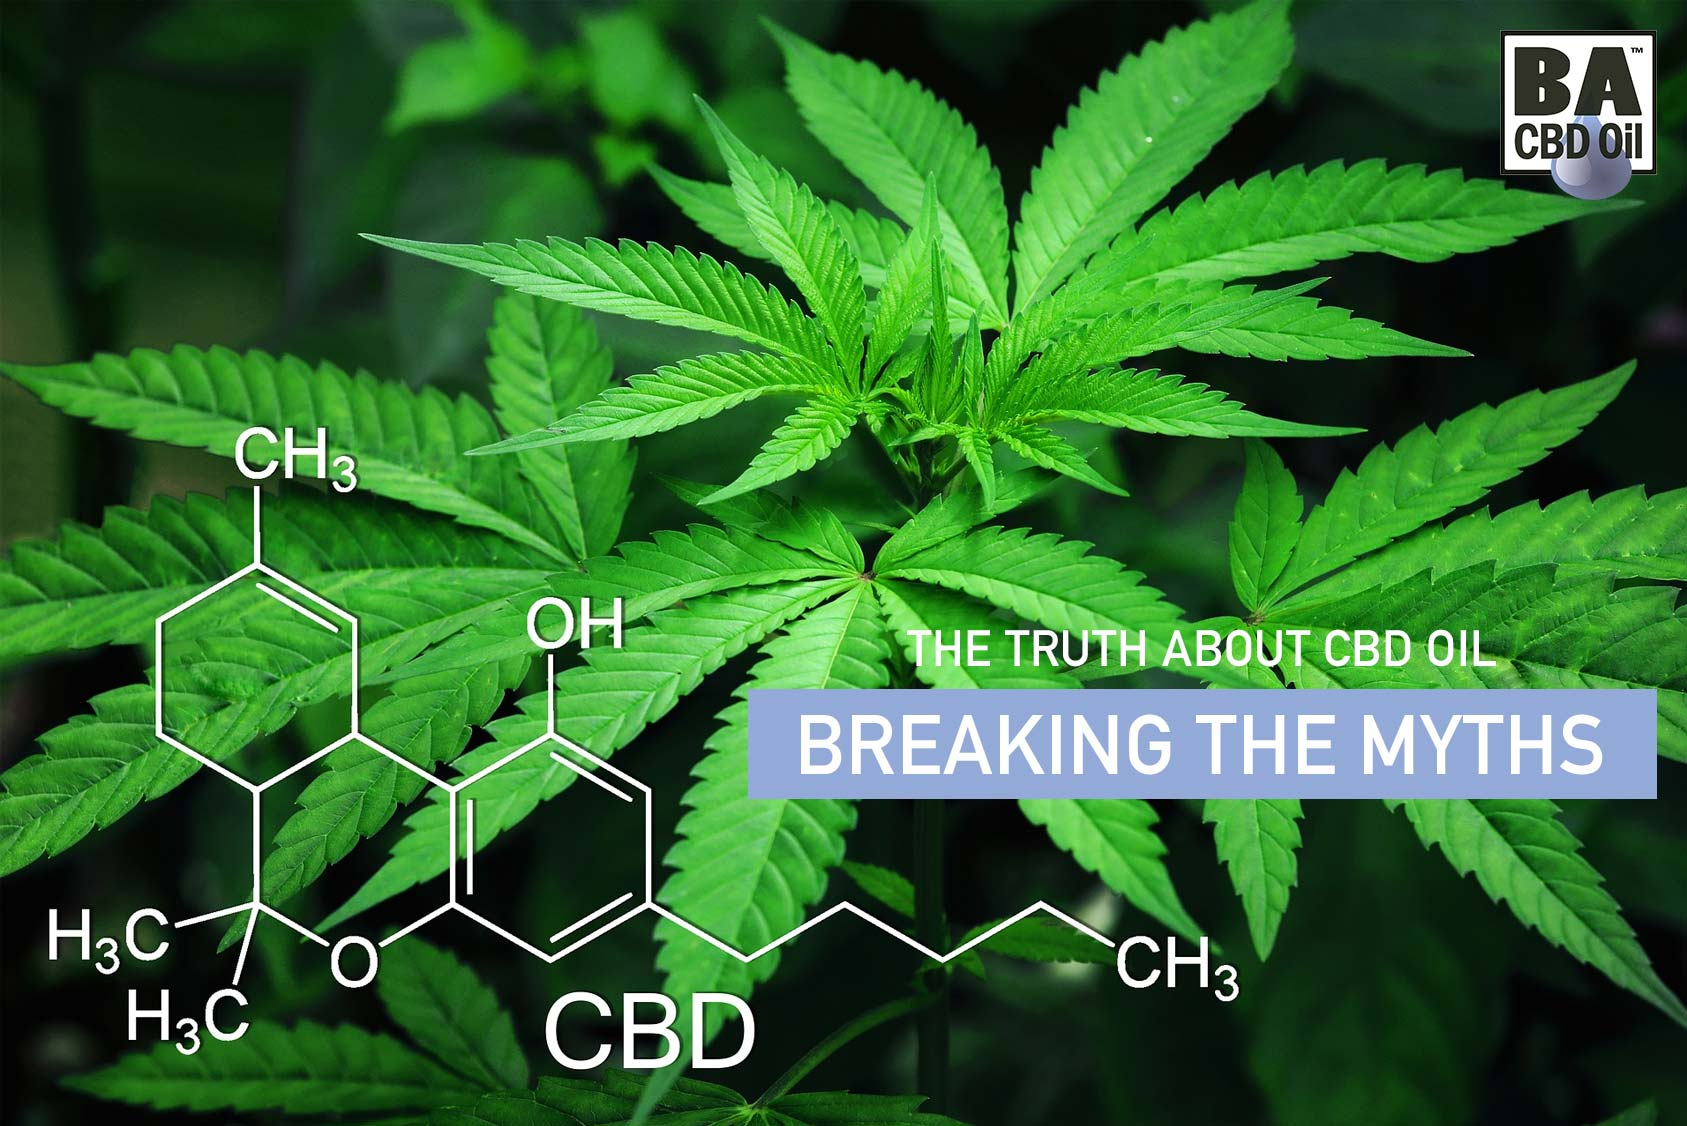 Truth About CBD Oil